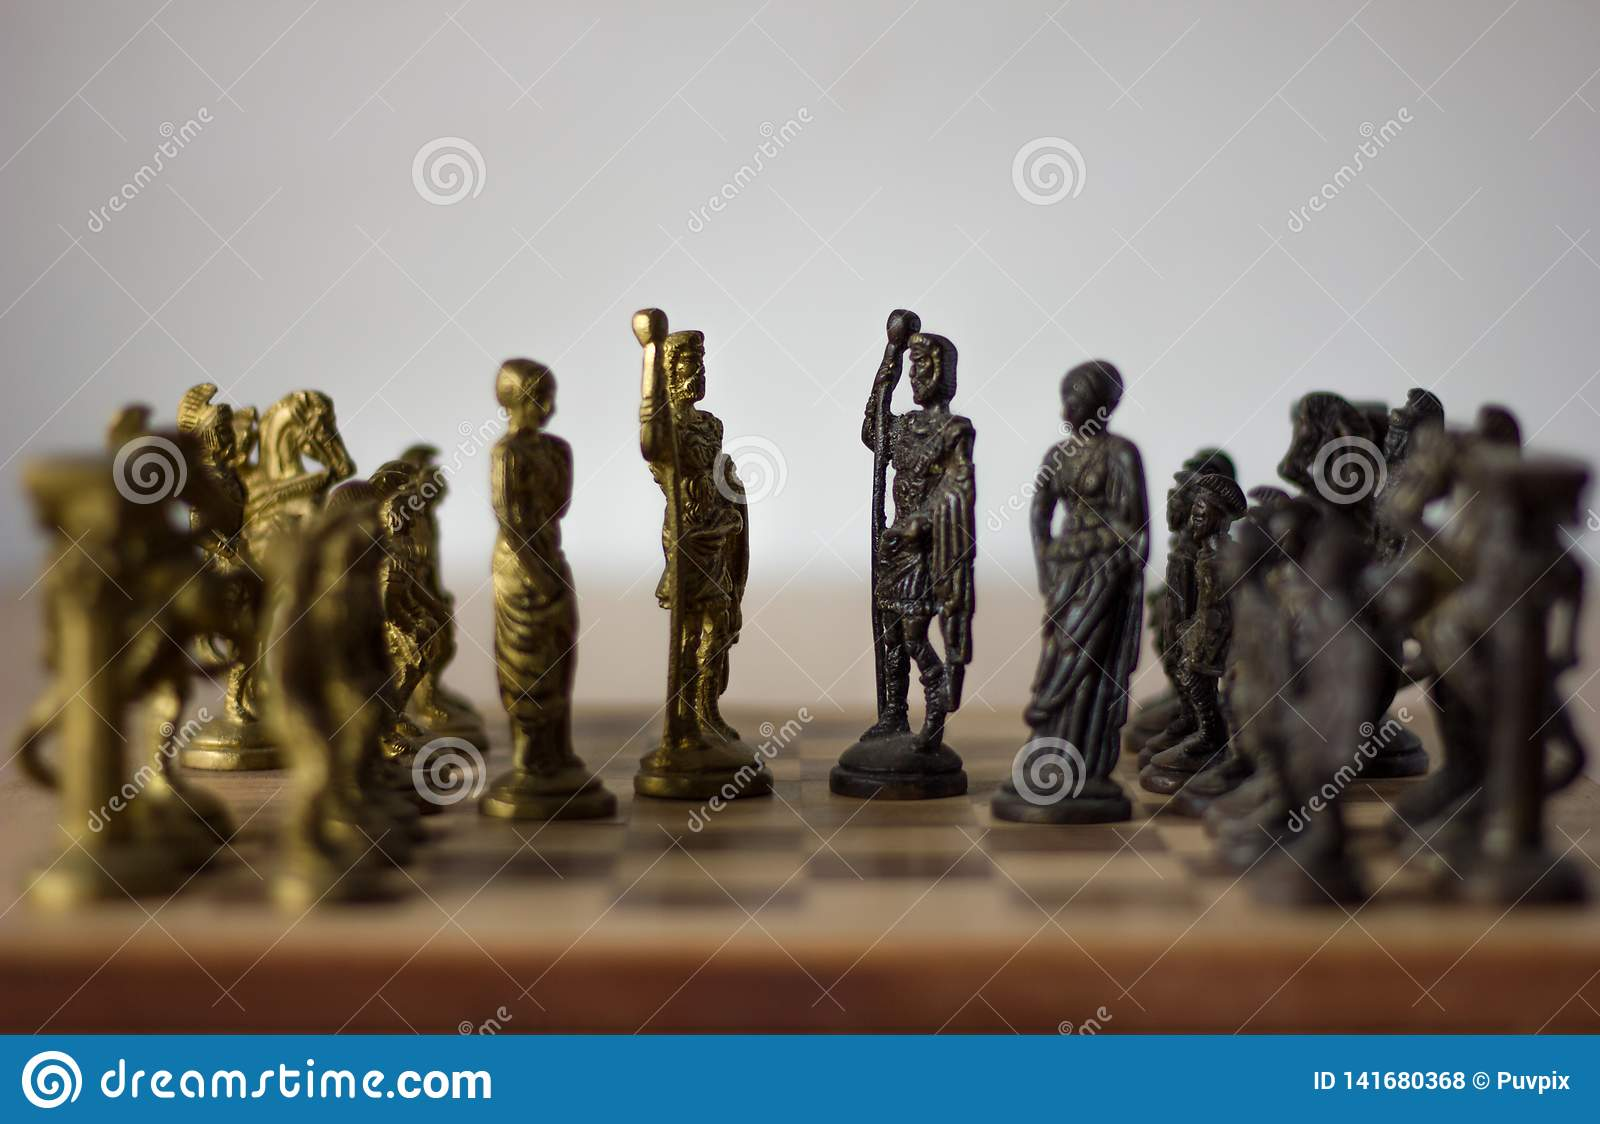 Chess board game, with kings and queens discussing for compromise, peace talks with their army behind